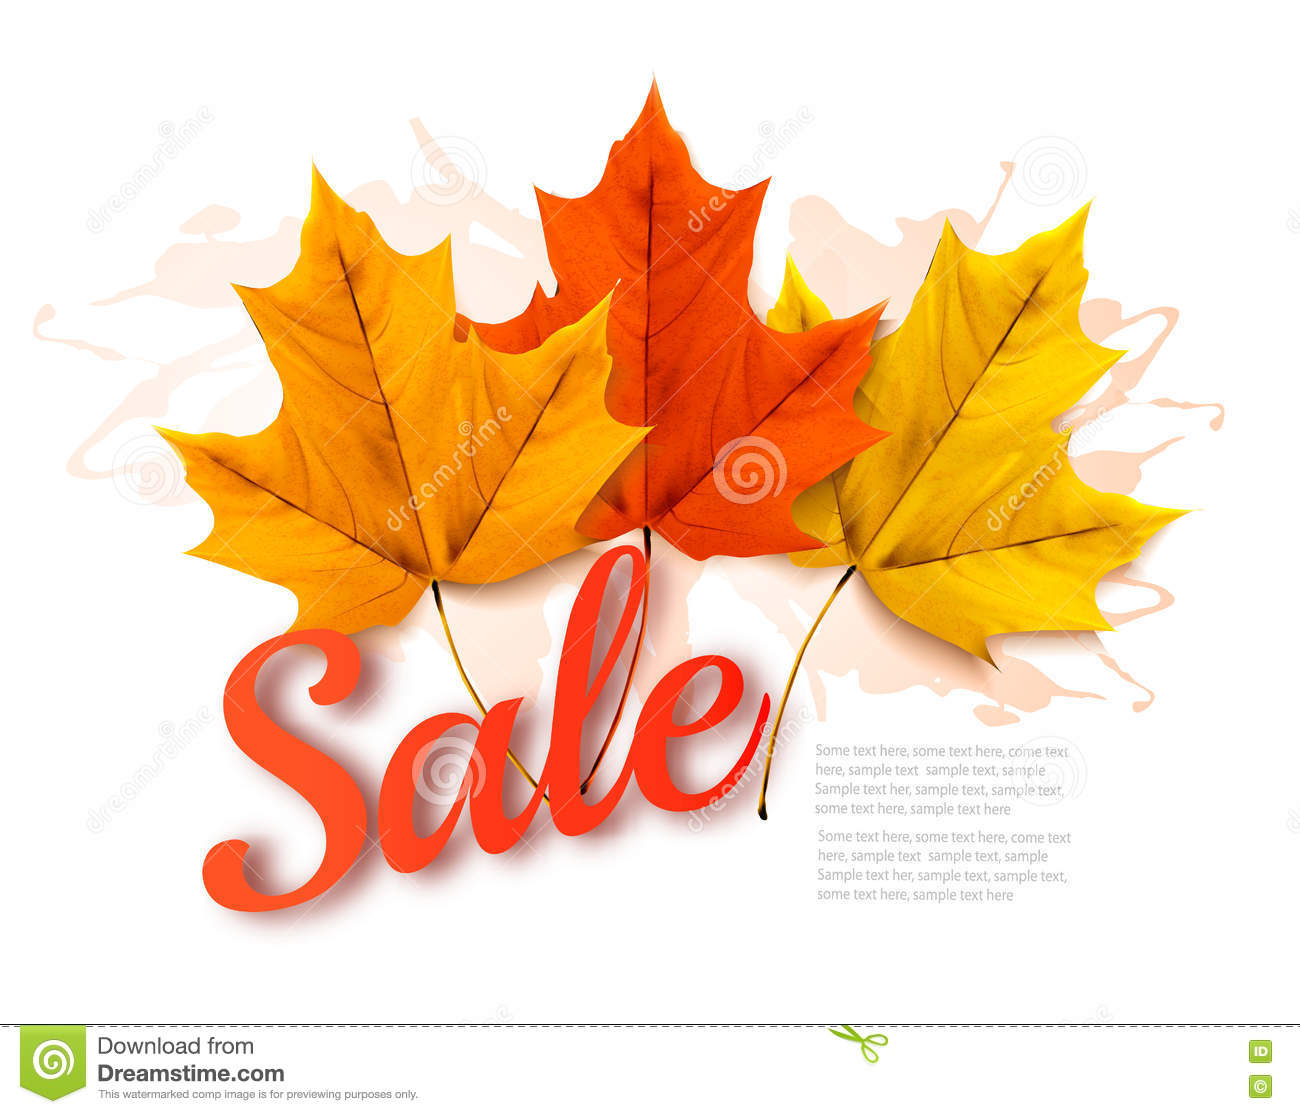 Autumn Sales banner with colorful leaves.